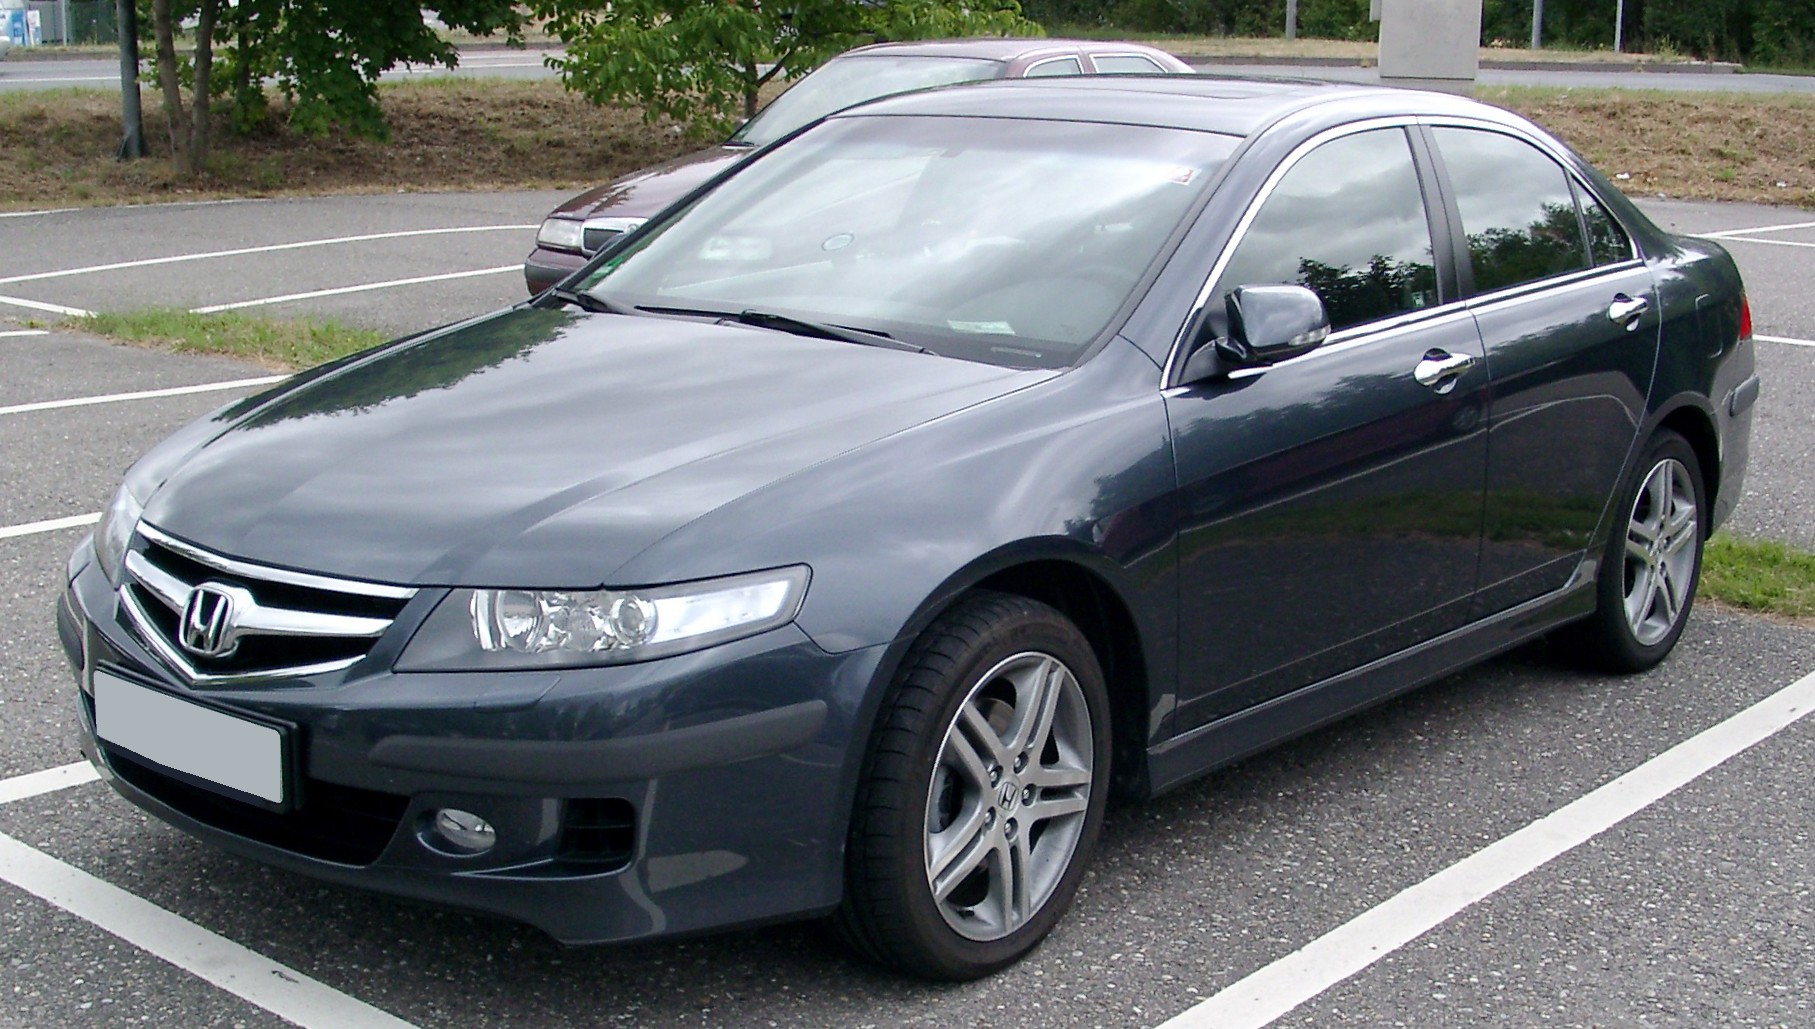 file honda accord front wikimedia commons